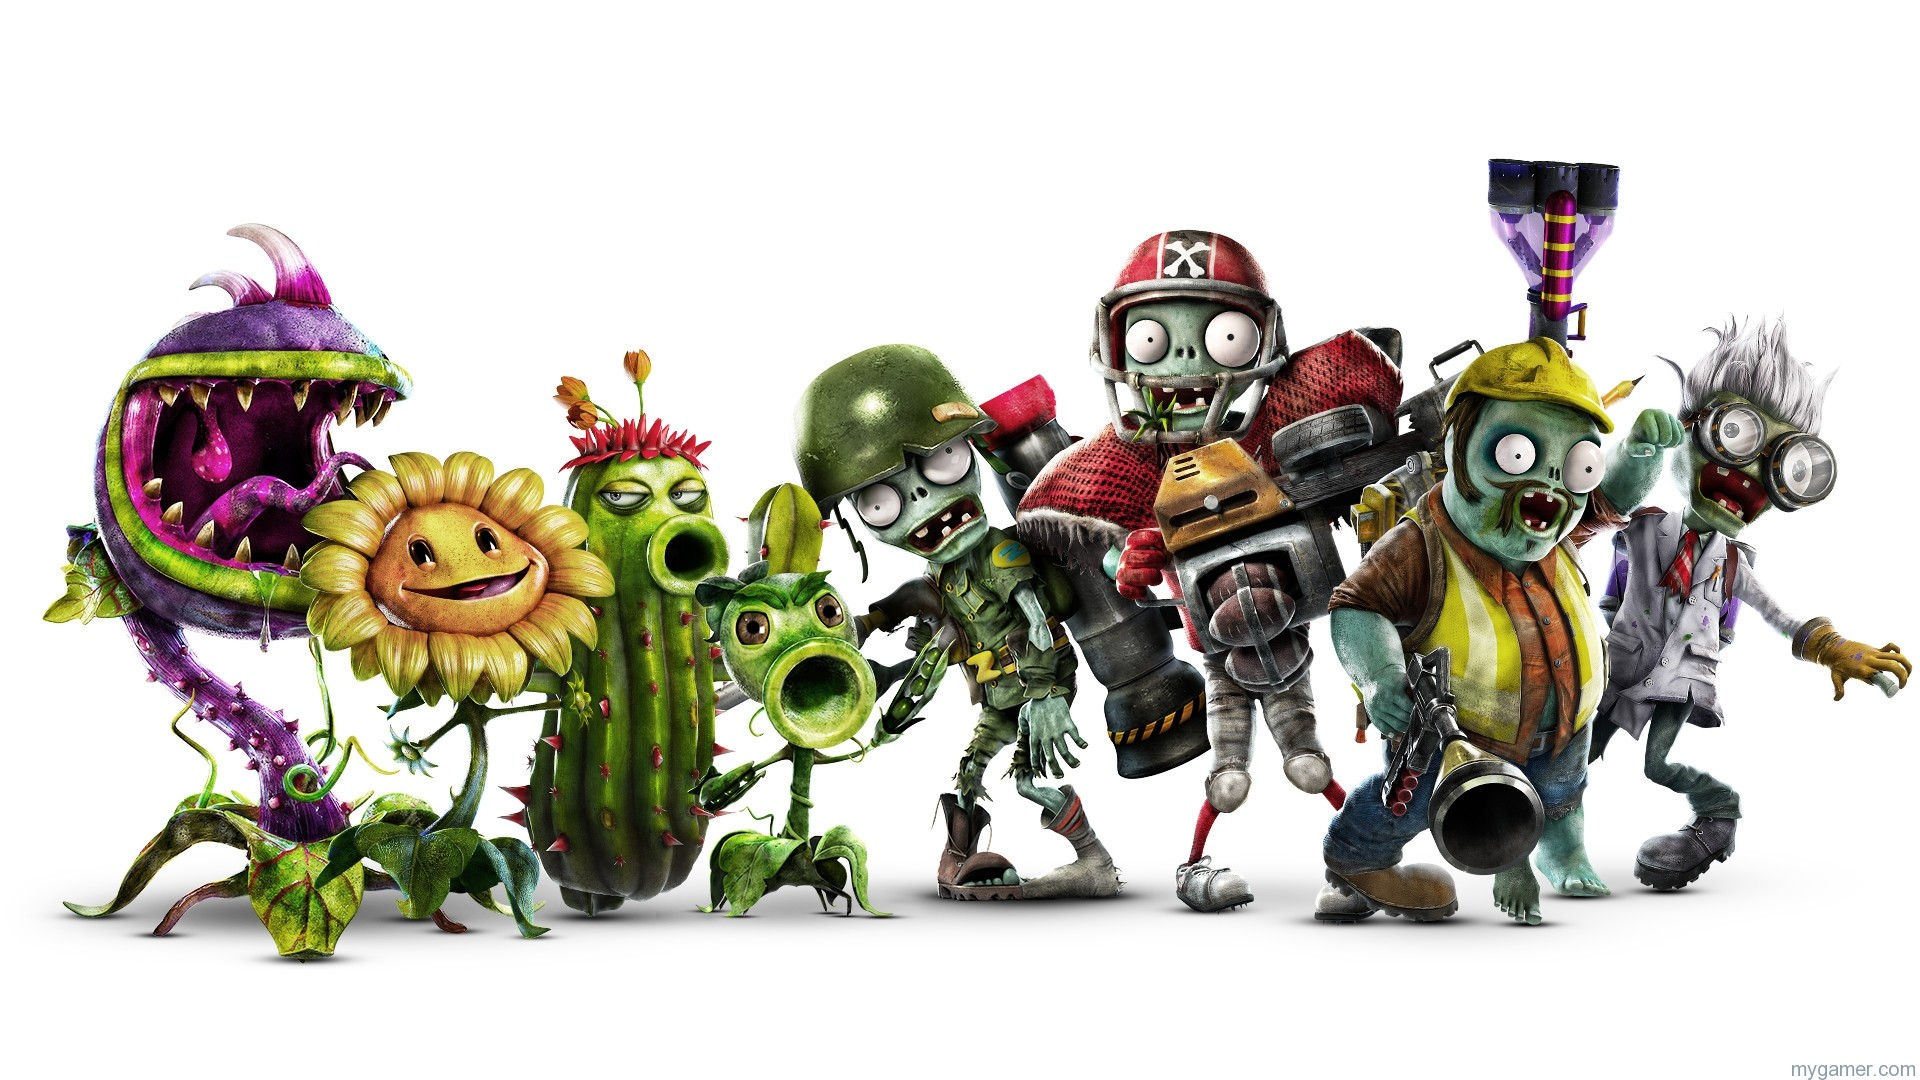 desktopBackground2 Plants vs Zombies: Garden Warfare 2 Preview Plants vs Zombies: Garden Warfare 2 Preview desktopBackground2